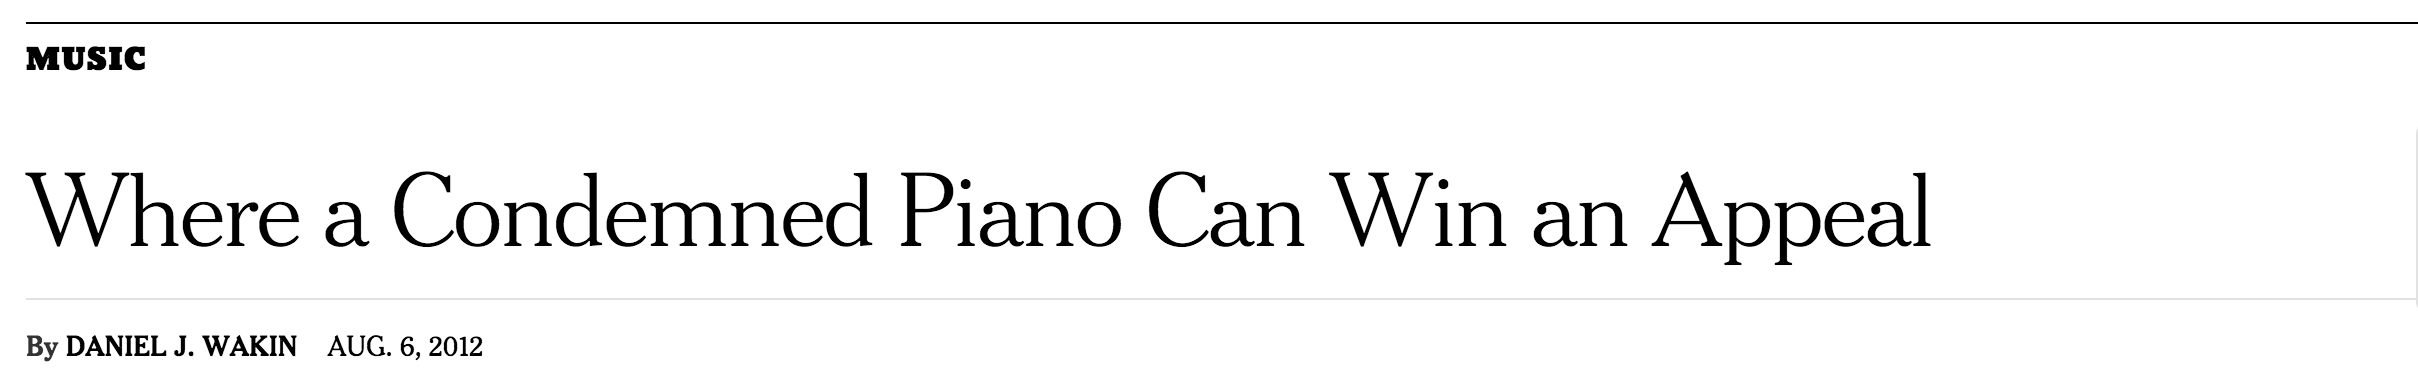 New York Times: Keys 4/4 Kids accepts all pianos. (Aug '12)